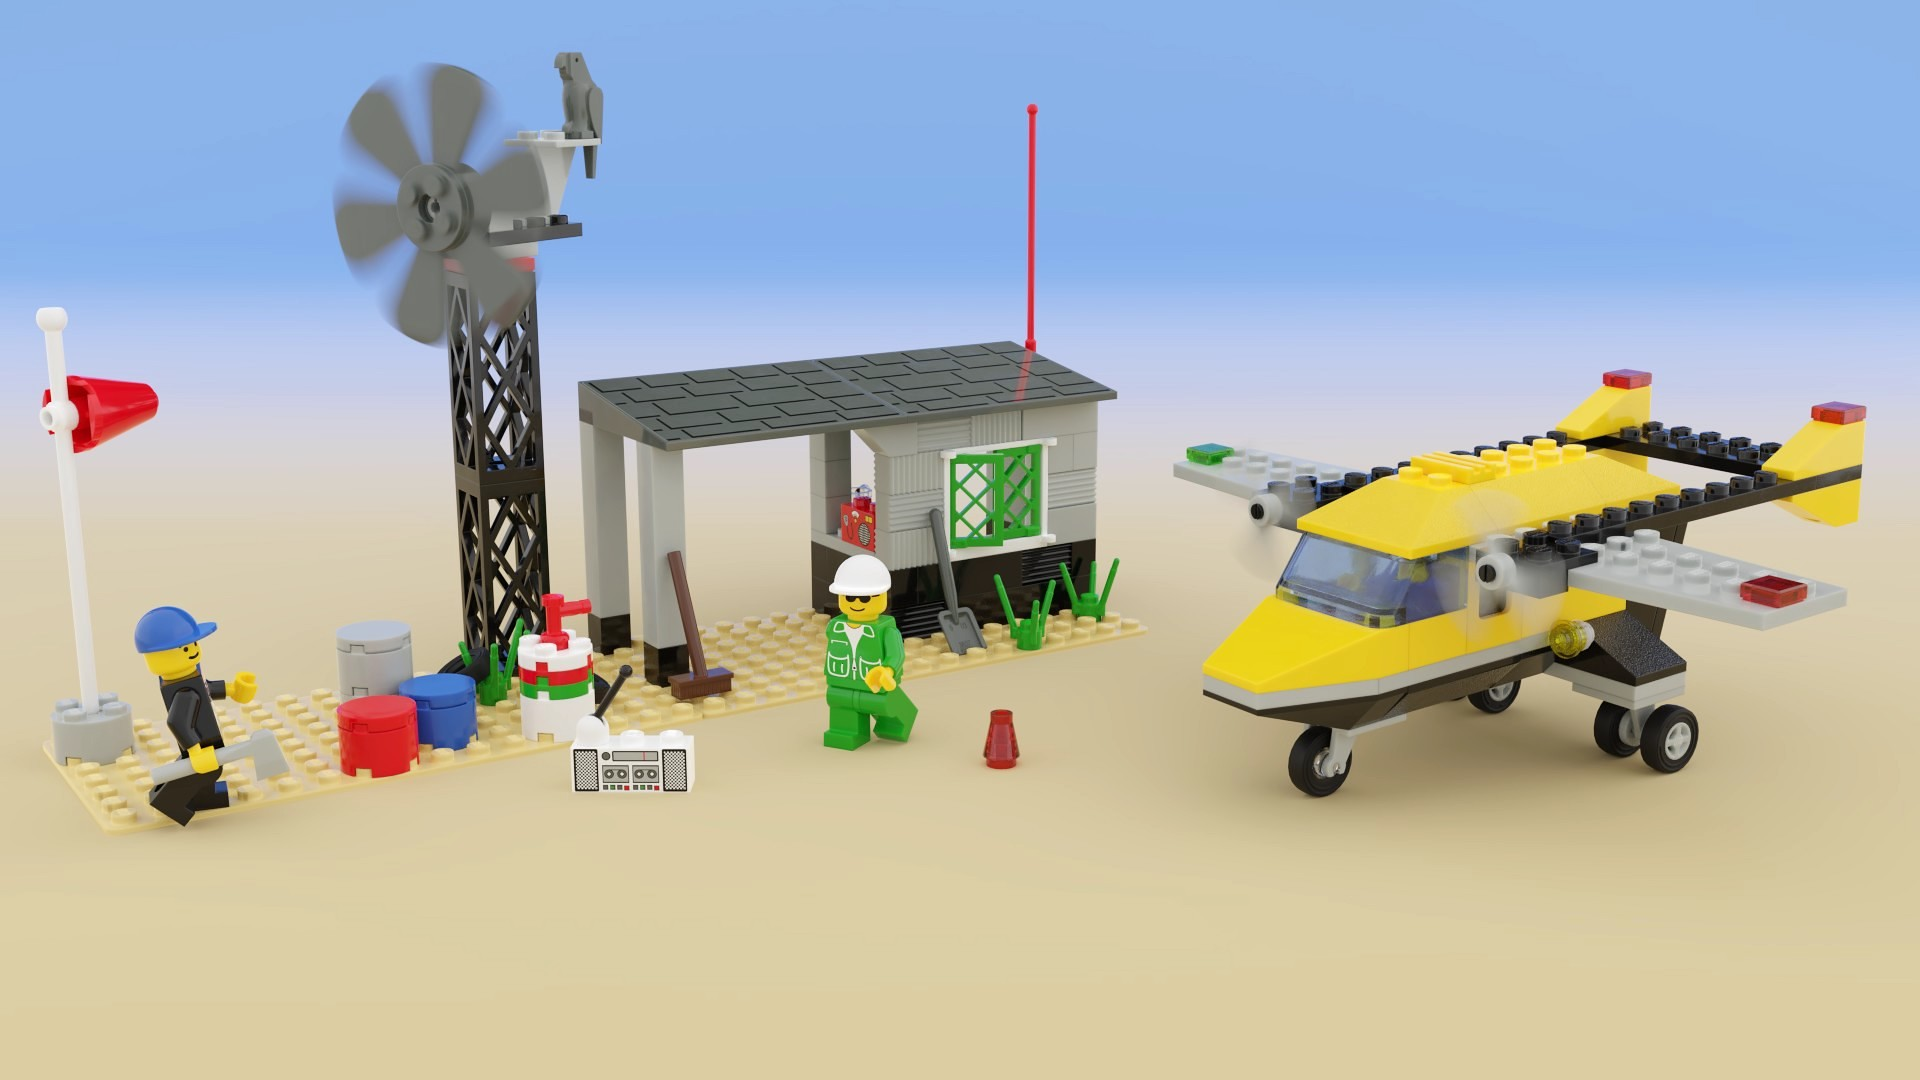 Planes, LEGO and Motion, What Could Be More Fun?